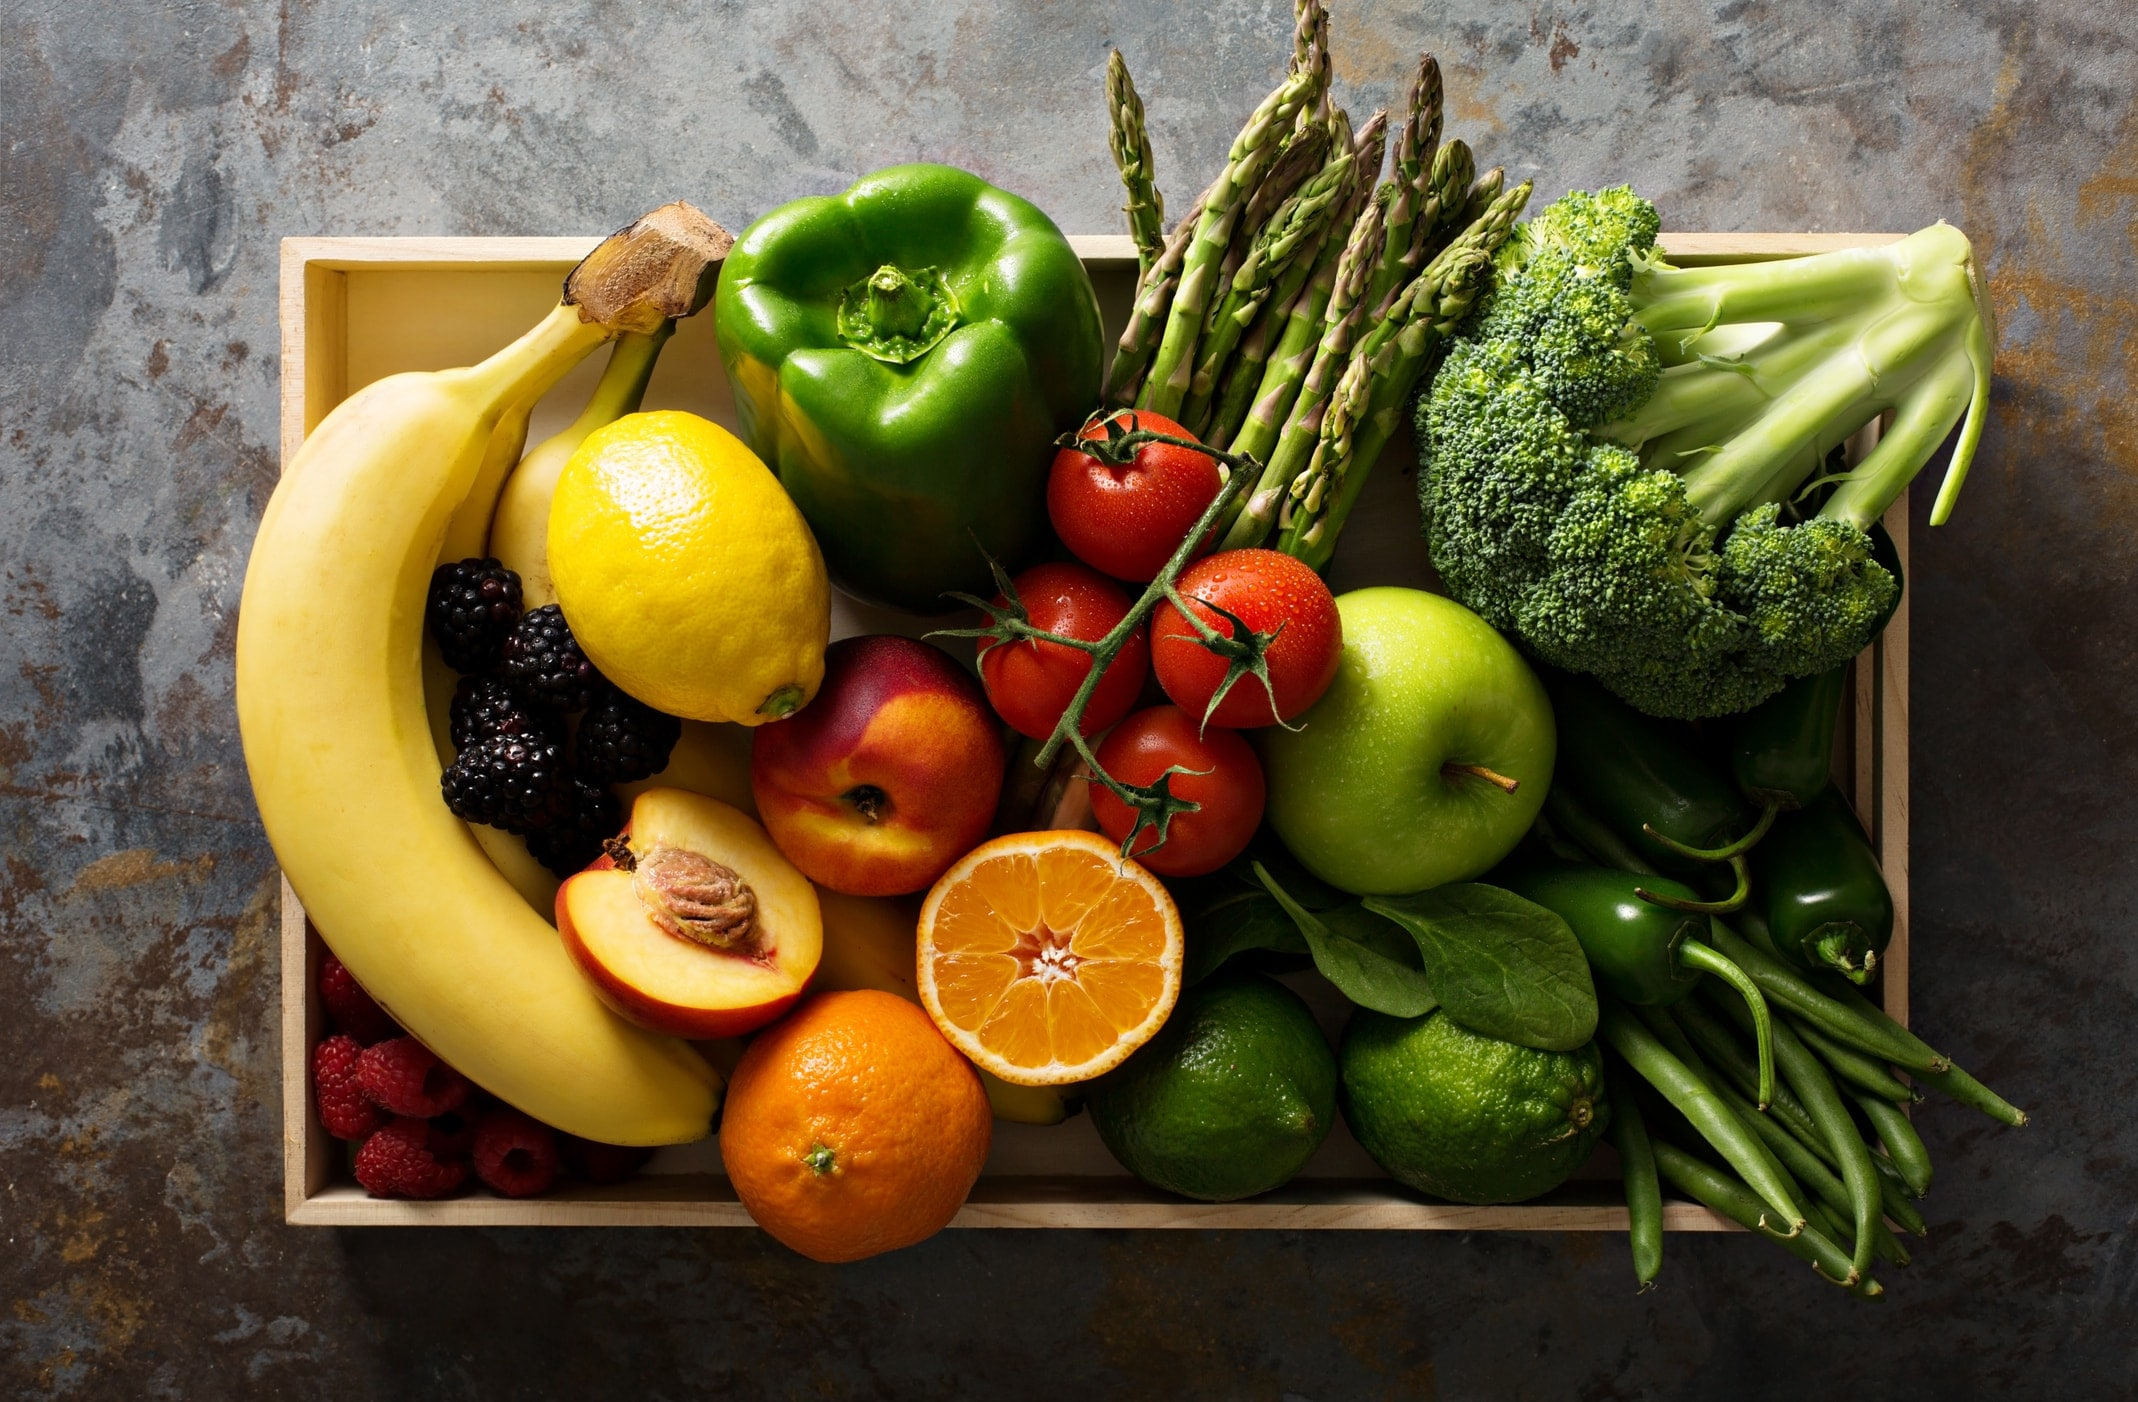 On Demand Fruit And Vegetable Delivery Business App